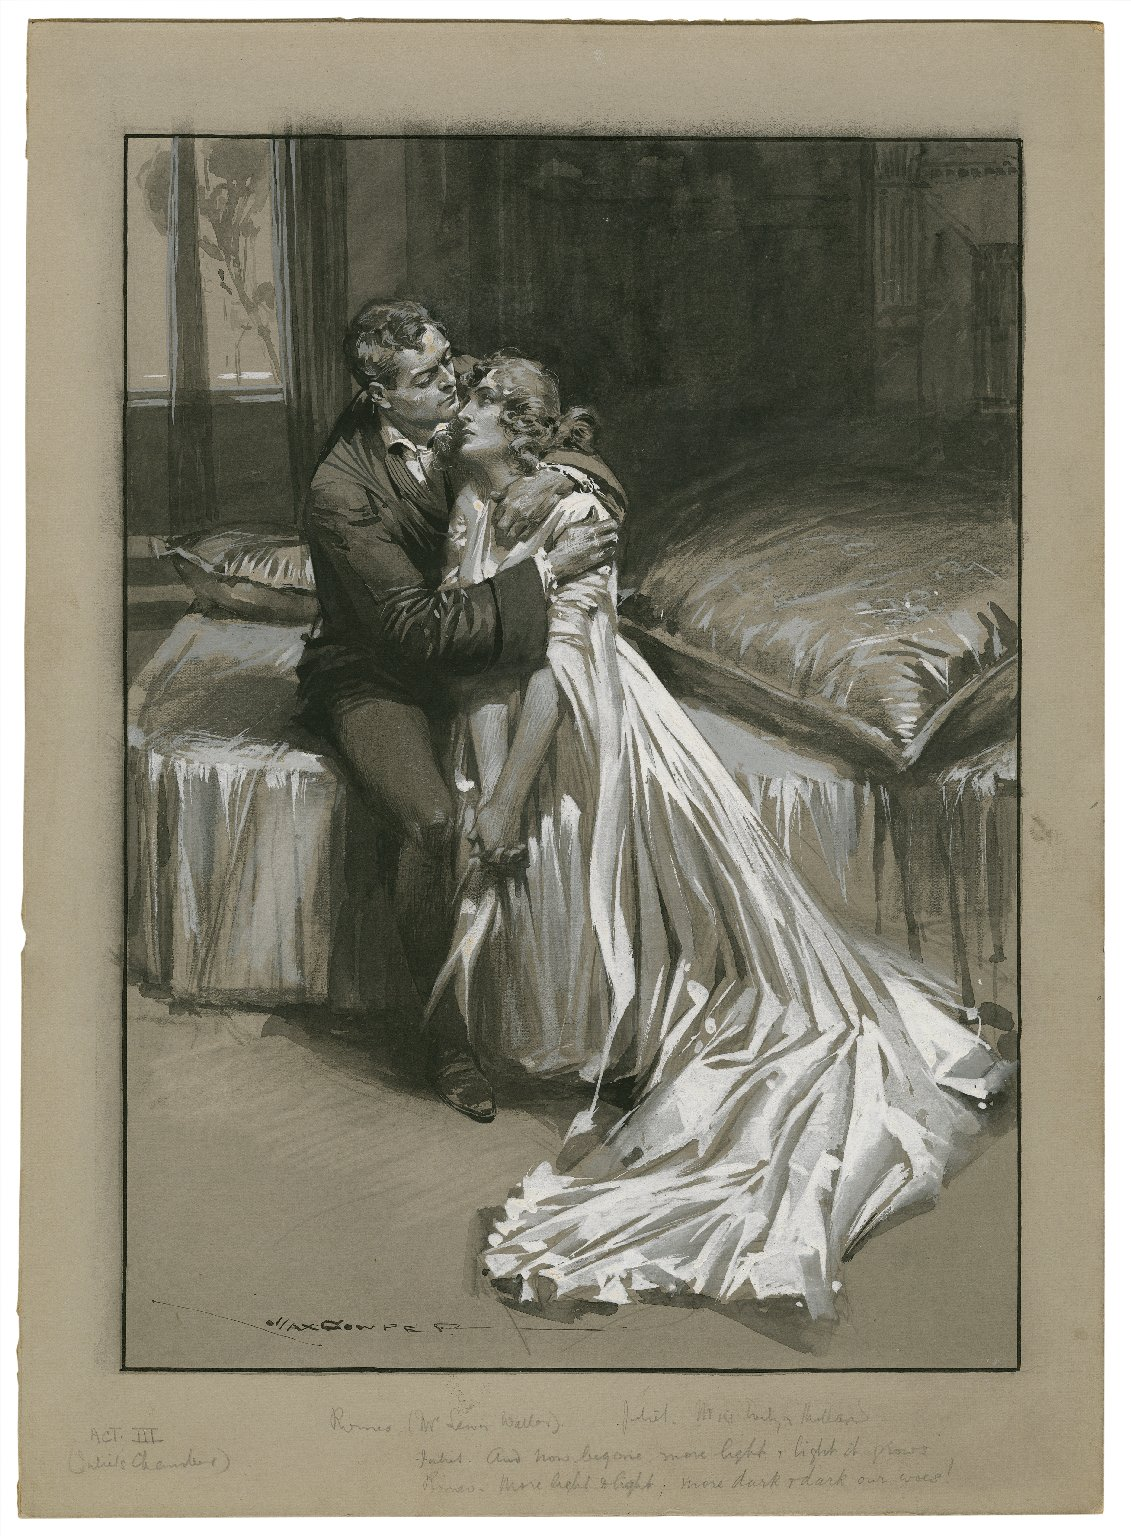 """Romeo and Juliet, III, 5, Mr. Lewis Waller as Romeo, and Miss Evelyn Millard as Juliet at the Imperial Theatre, Juliet: """"And now begone, more light and light it grows,"""" Romeo: """"More light and light, more dark and dark our woes!"""" [graphic] / Max Cowper."""